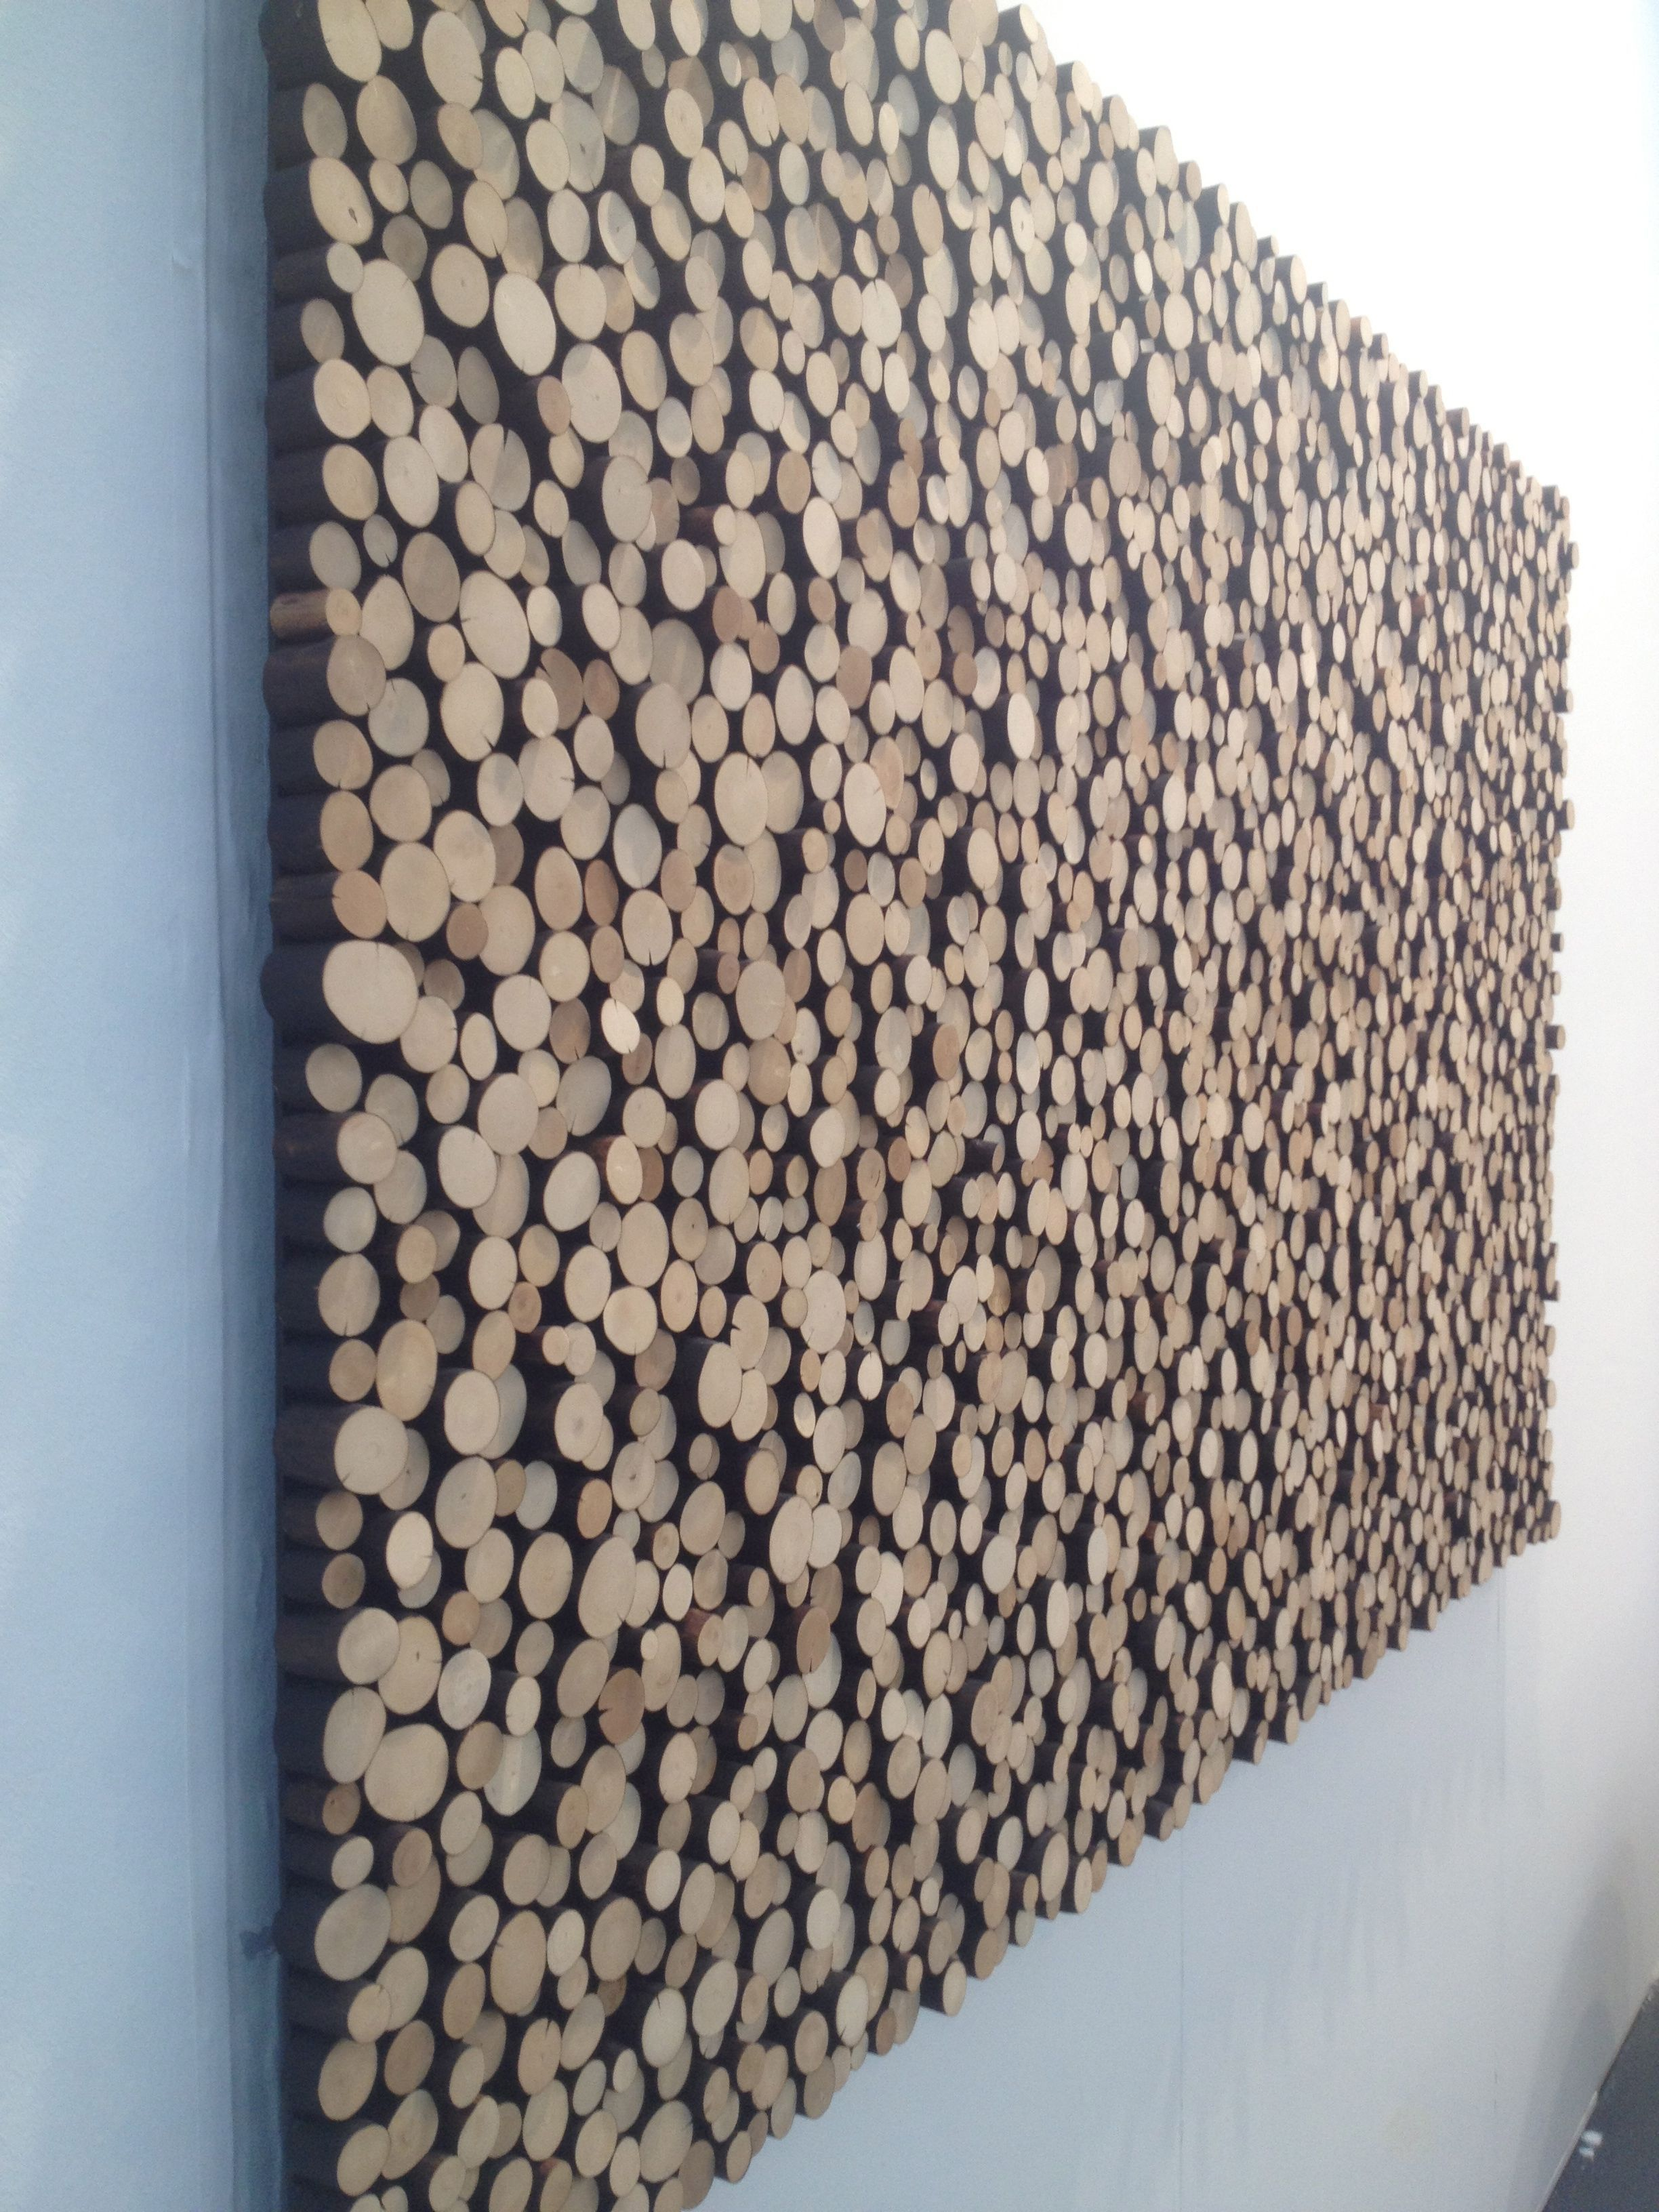 Interesting Wall Covering Done By An Artist At The Affordable Art Fair Inexpensive Artwork Diy Wall Art Wooden Wall Art